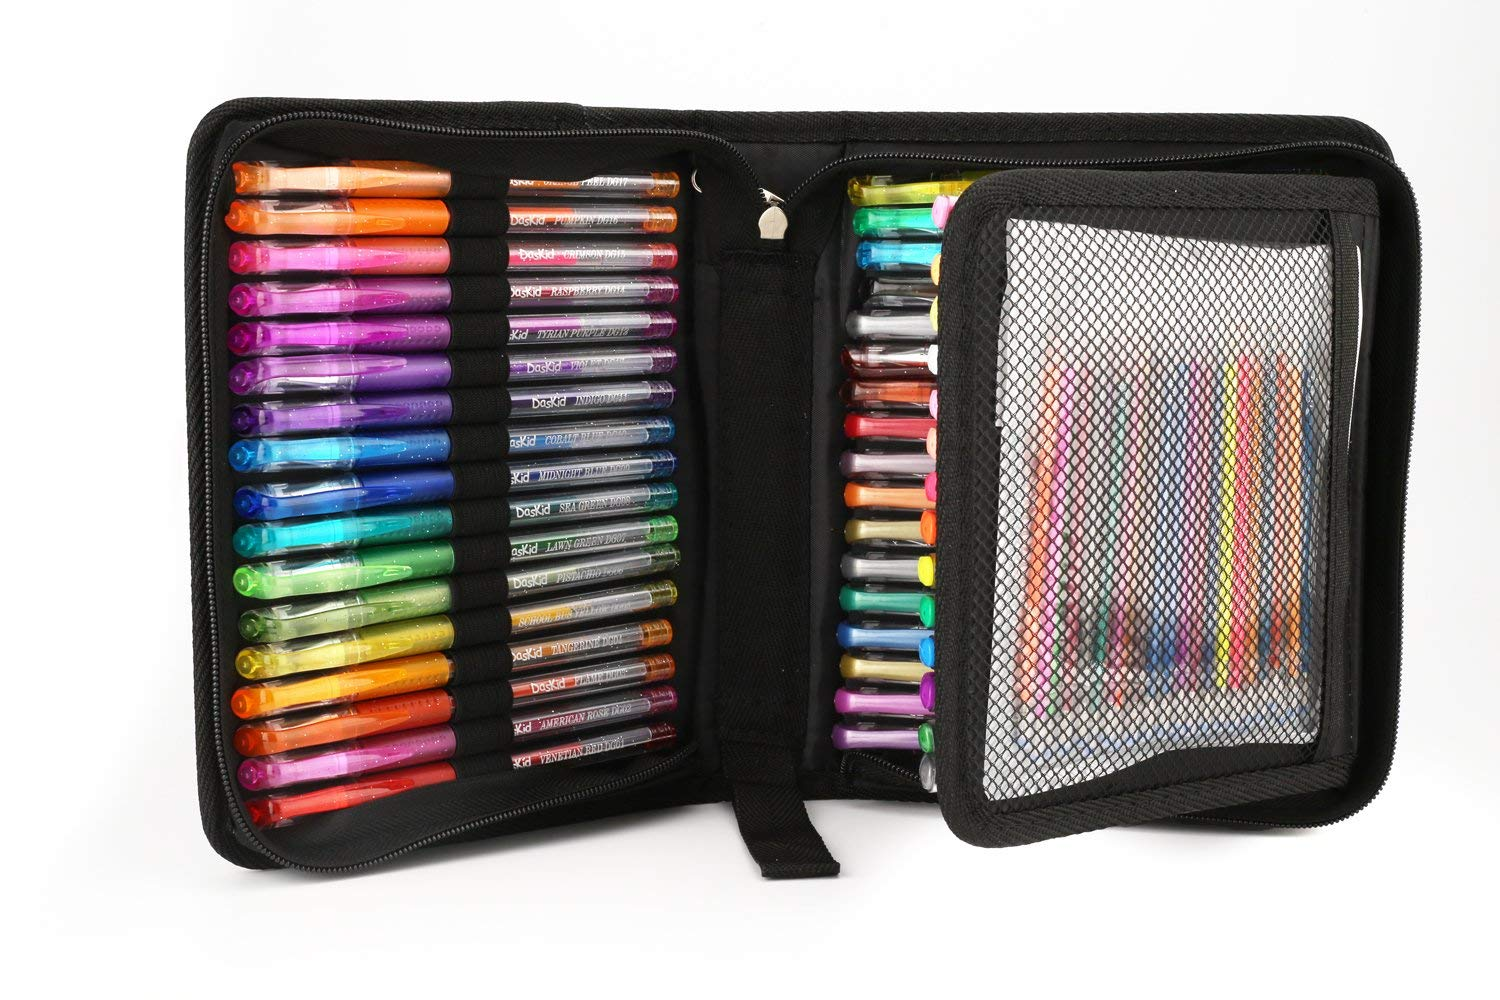 96 Color Artist Gel Pen Set, includes 24 Glitter Gel Pens 12 Metallic, 6 Pastel,6 Neon, plus 48 Matching Color Refills, More Ink Largest Non-Toxic Art Neon Pen for Adults Coloring Books Craft Doodling Drawing by DasKid (Image #2)